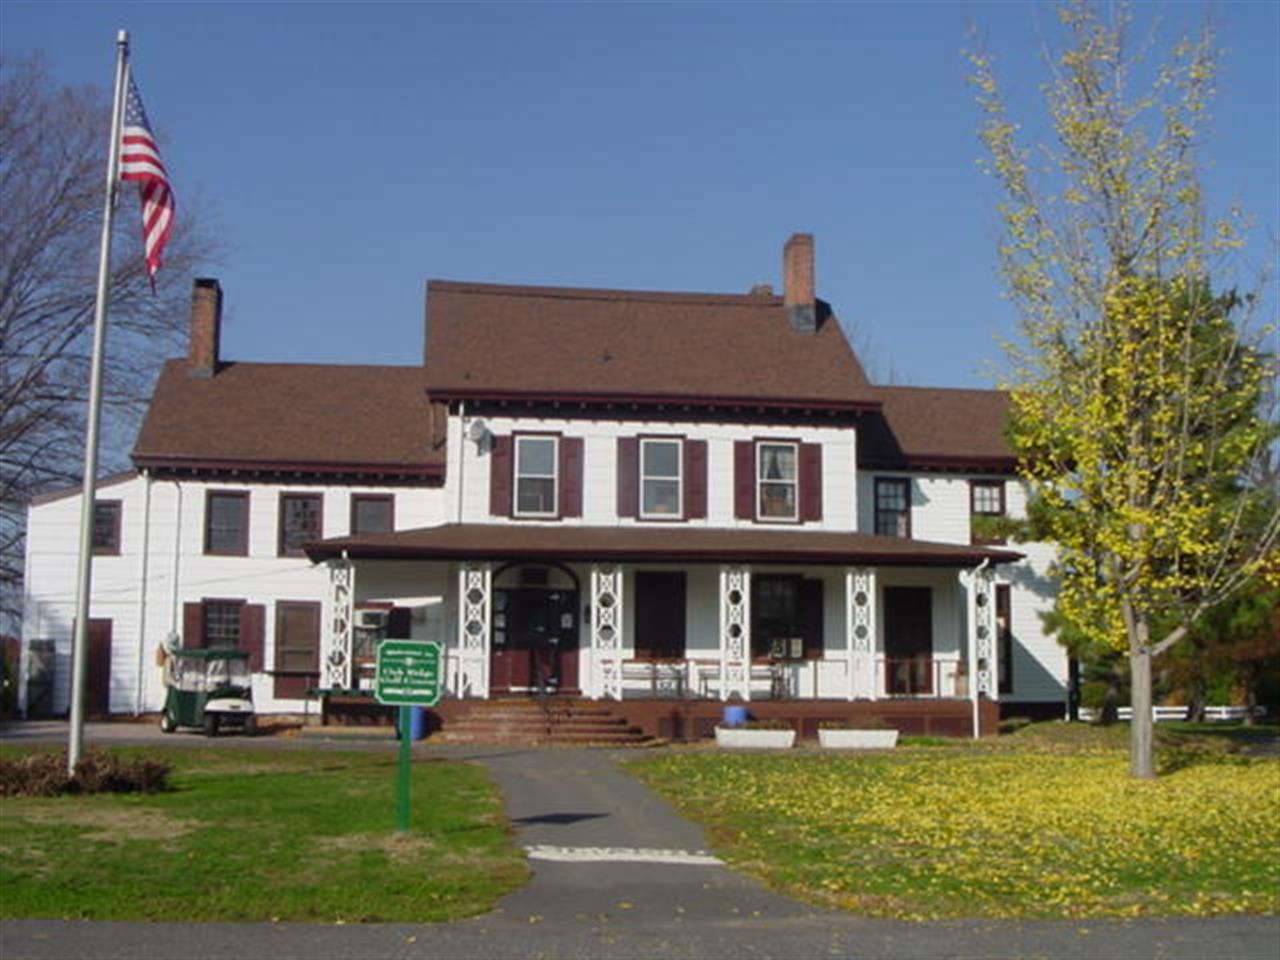 Oak Ridge Park Visitor Center, Clark NJ